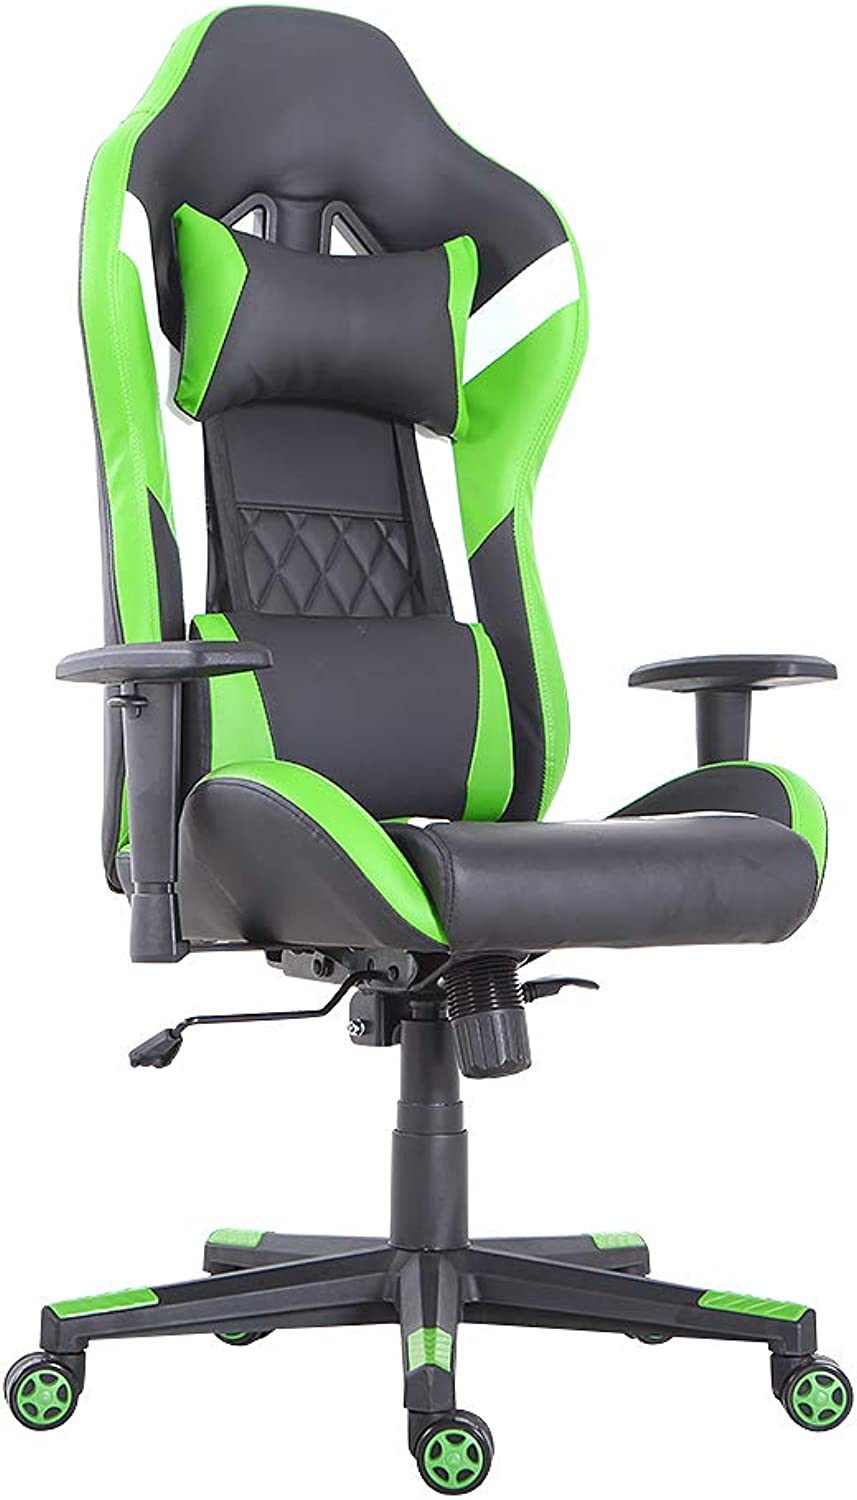 LCH Gaming Office Chair Ergonomic High-Back Desk Chairs Racing Style with Lumbar Support, Height Adjustable Seat, Headrest, Soft Foam Seat, Green